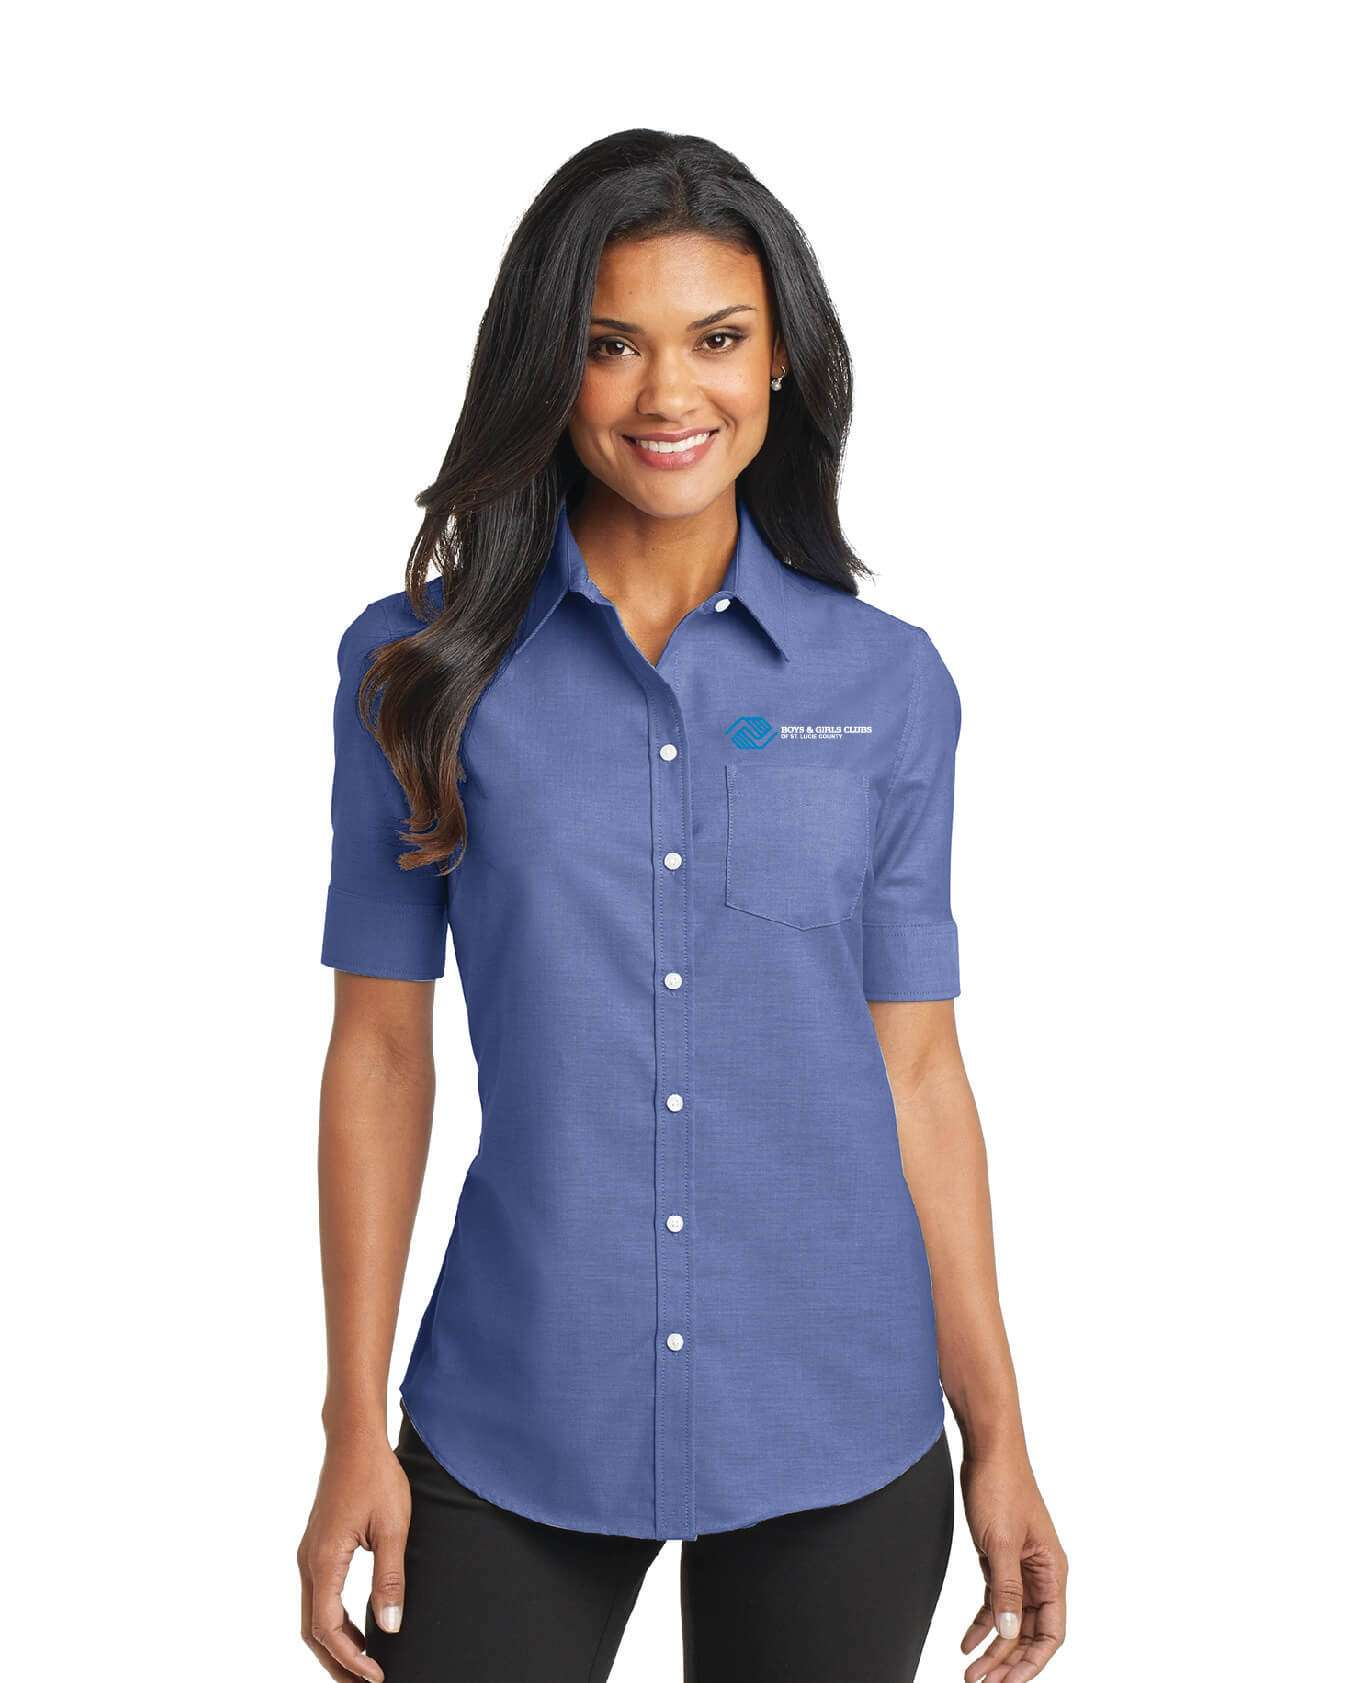 BGC L508 Port Authority Ladies S/S Easy Care Shirt